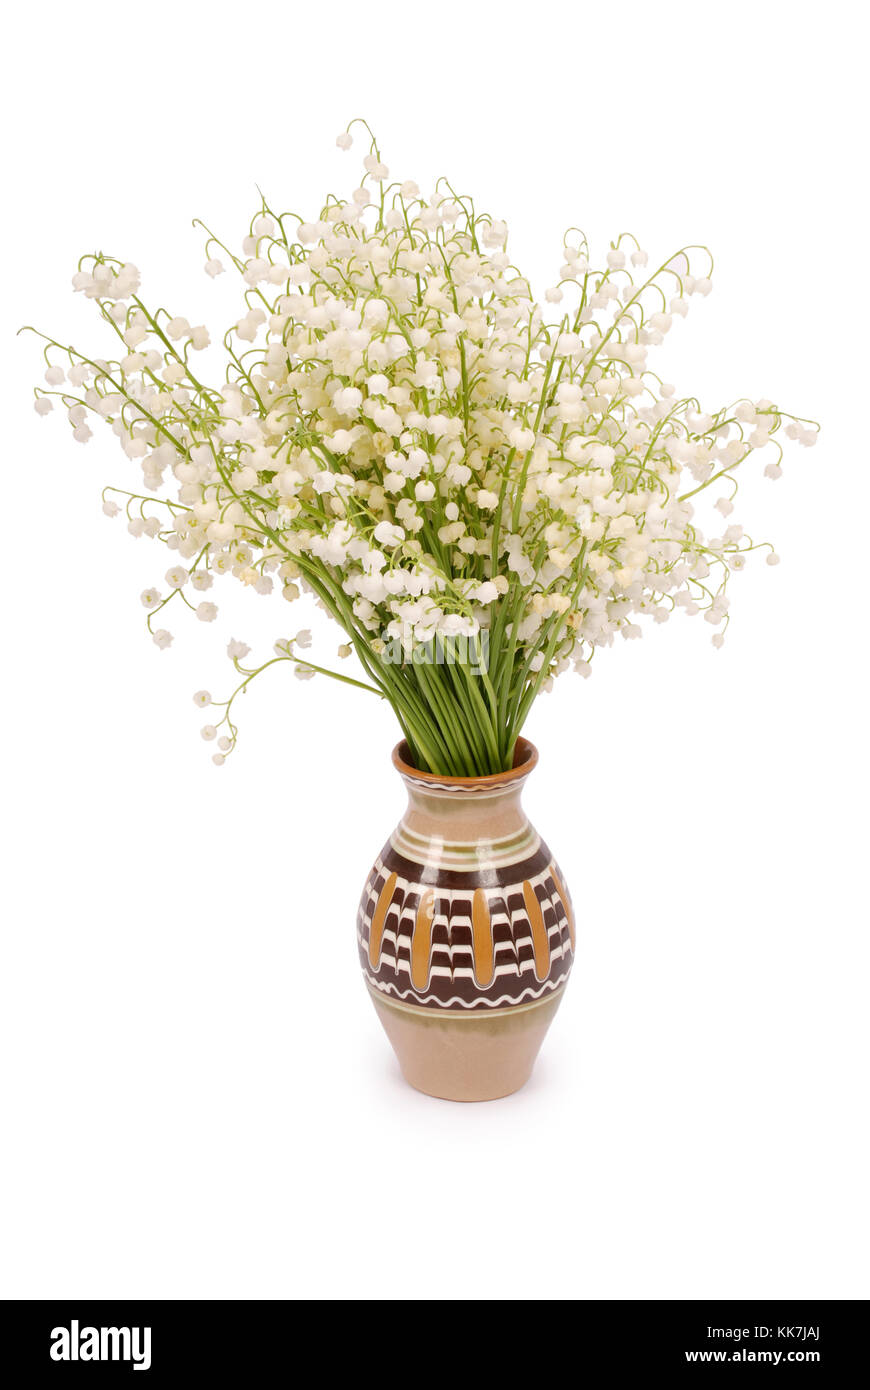 Bouquet lily of the valley in a pot isolated on white background bouquet lily of the valley in a pot isolated on white background with soft shadow izmirmasajfo